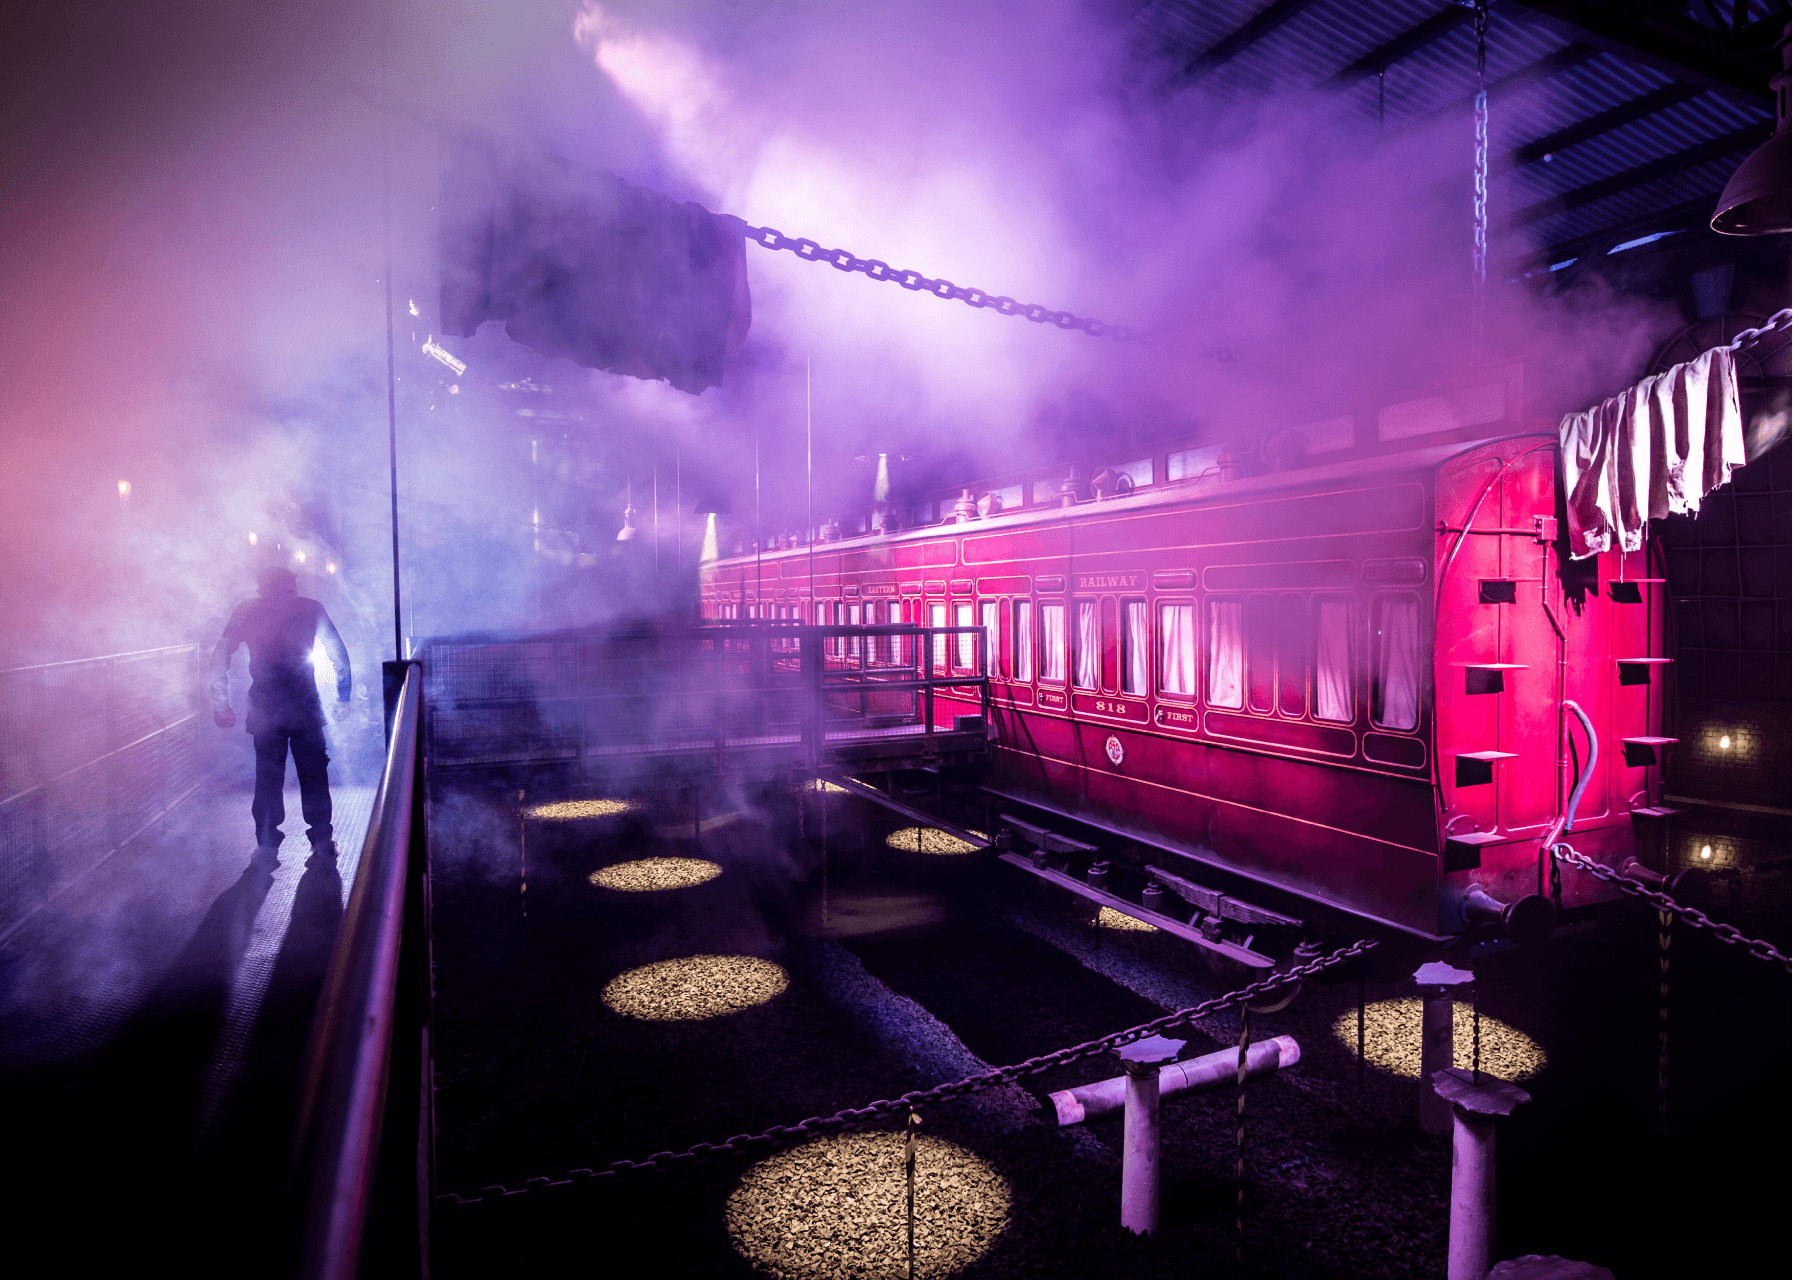 Derren Brown's Ghost Train Hanging Train